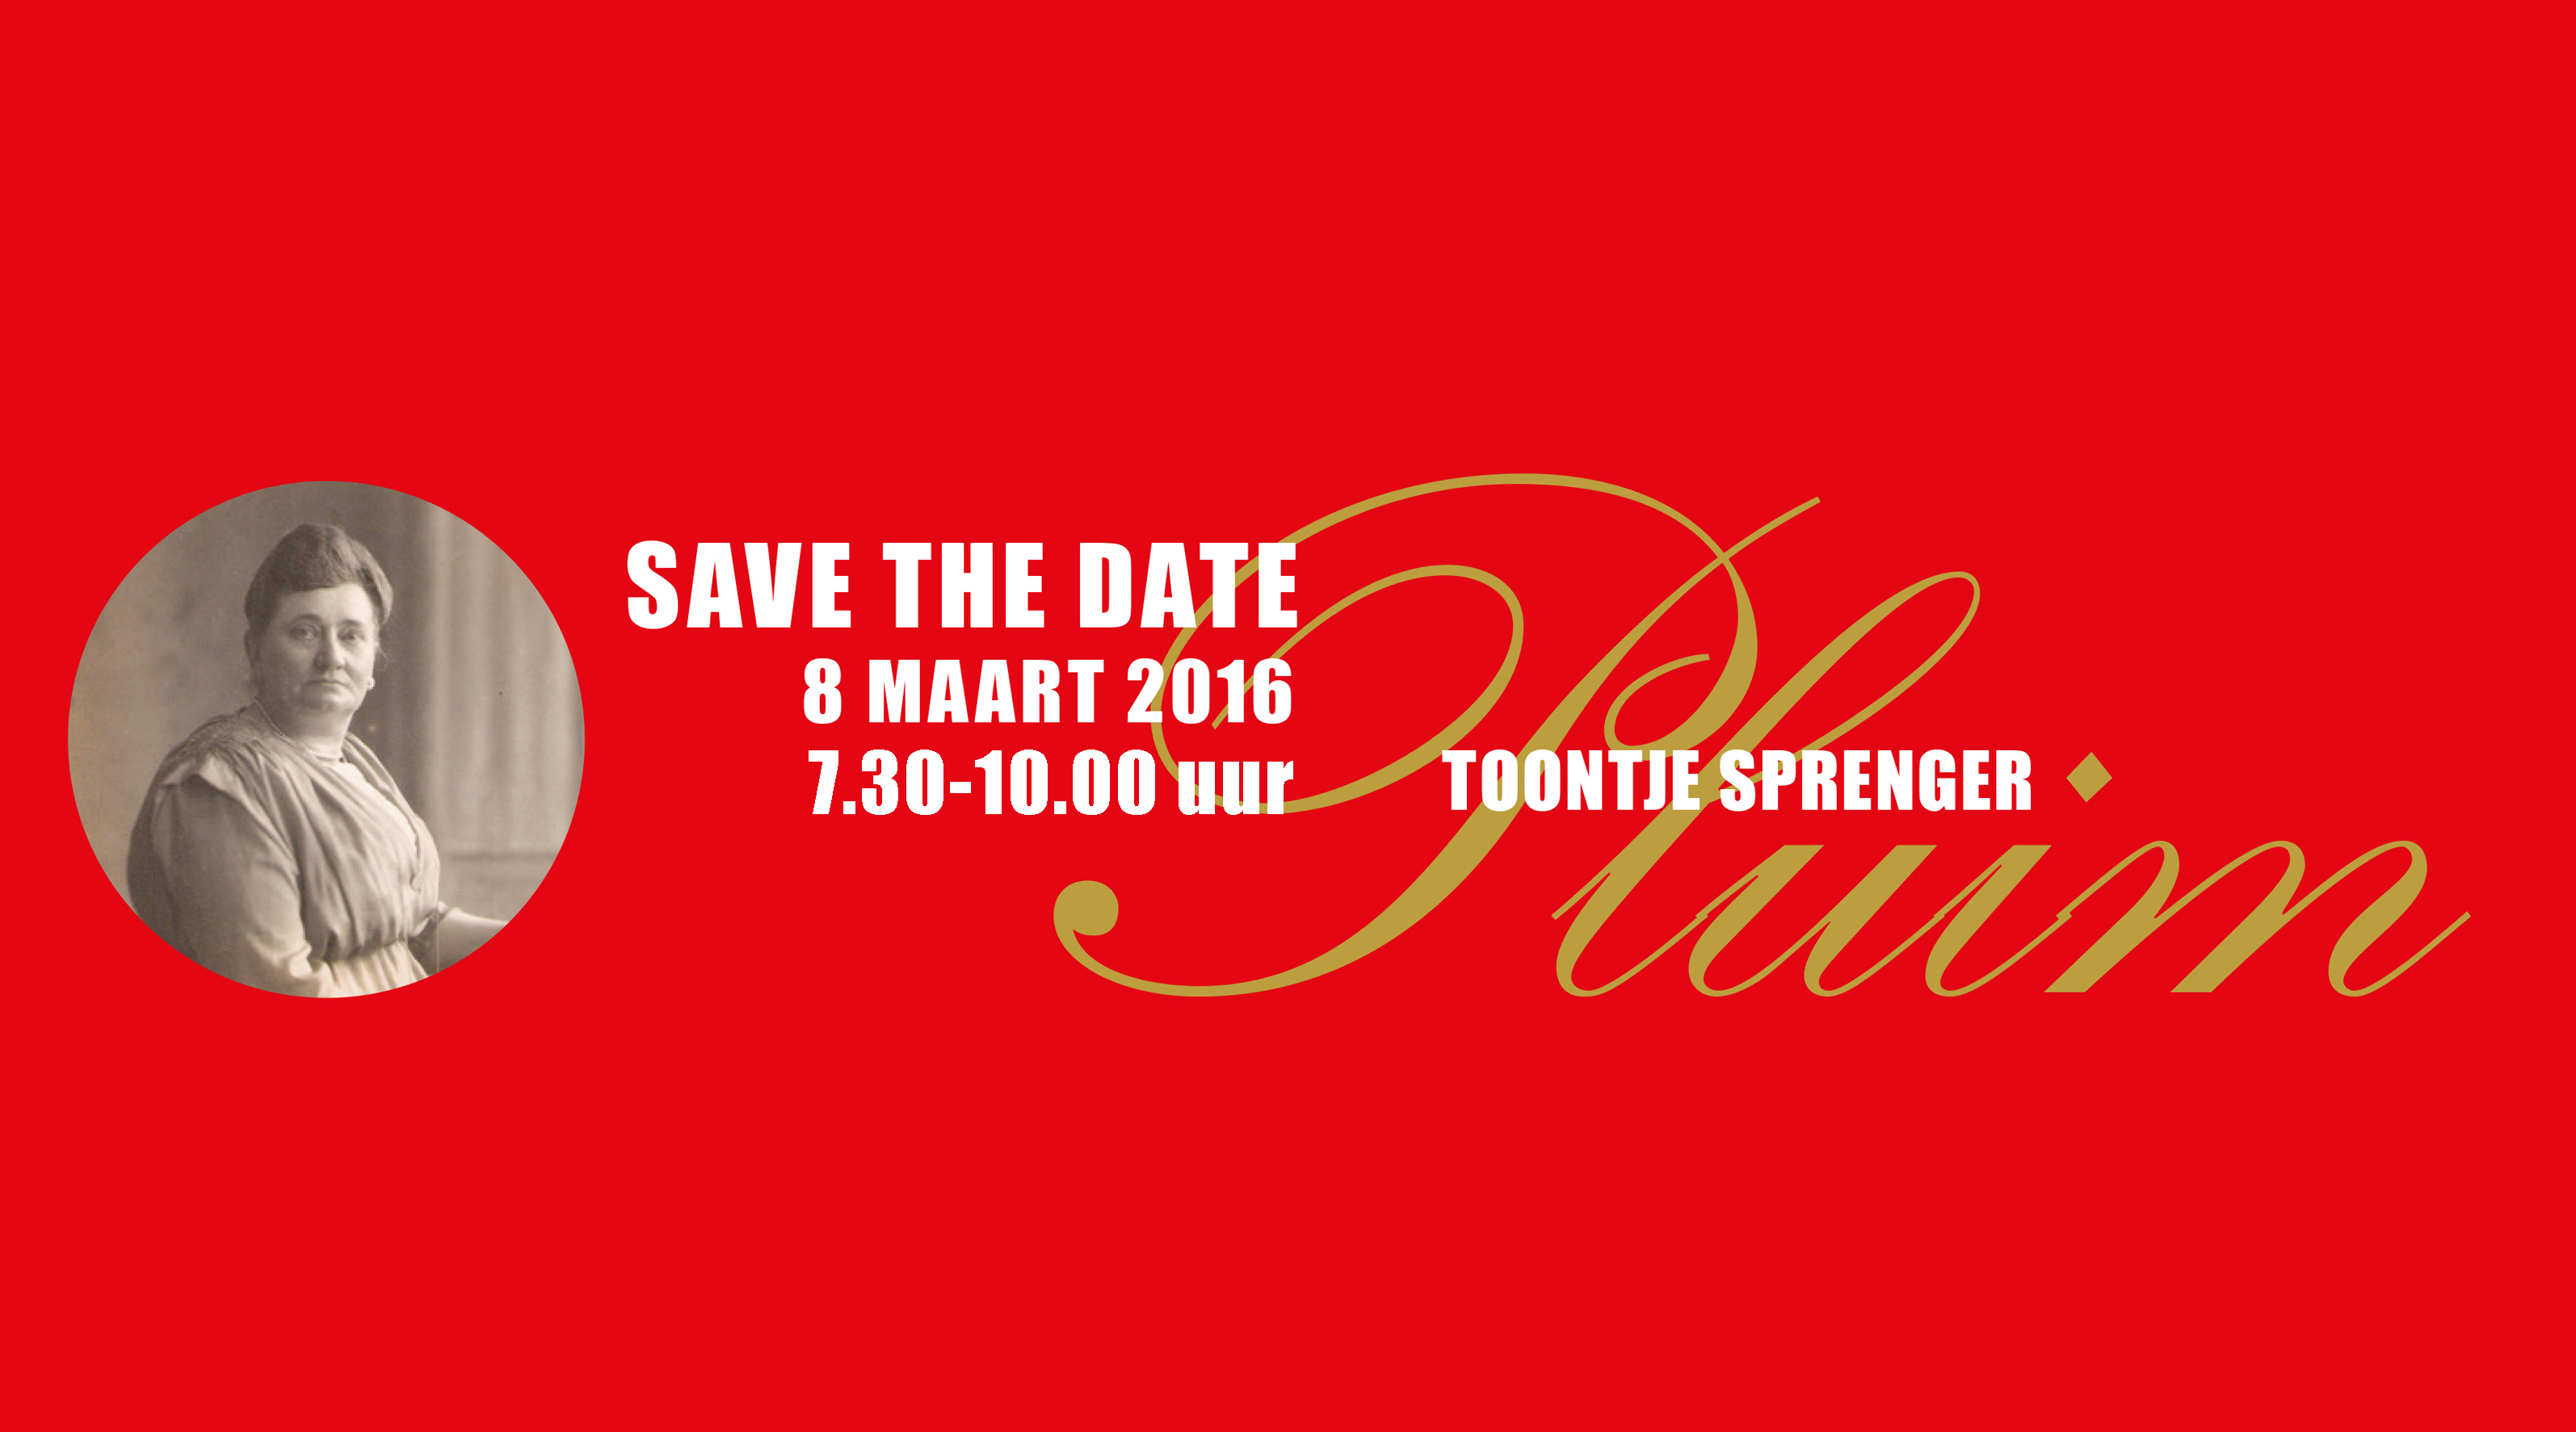 Save the date: Toontje Sprenger Pluim